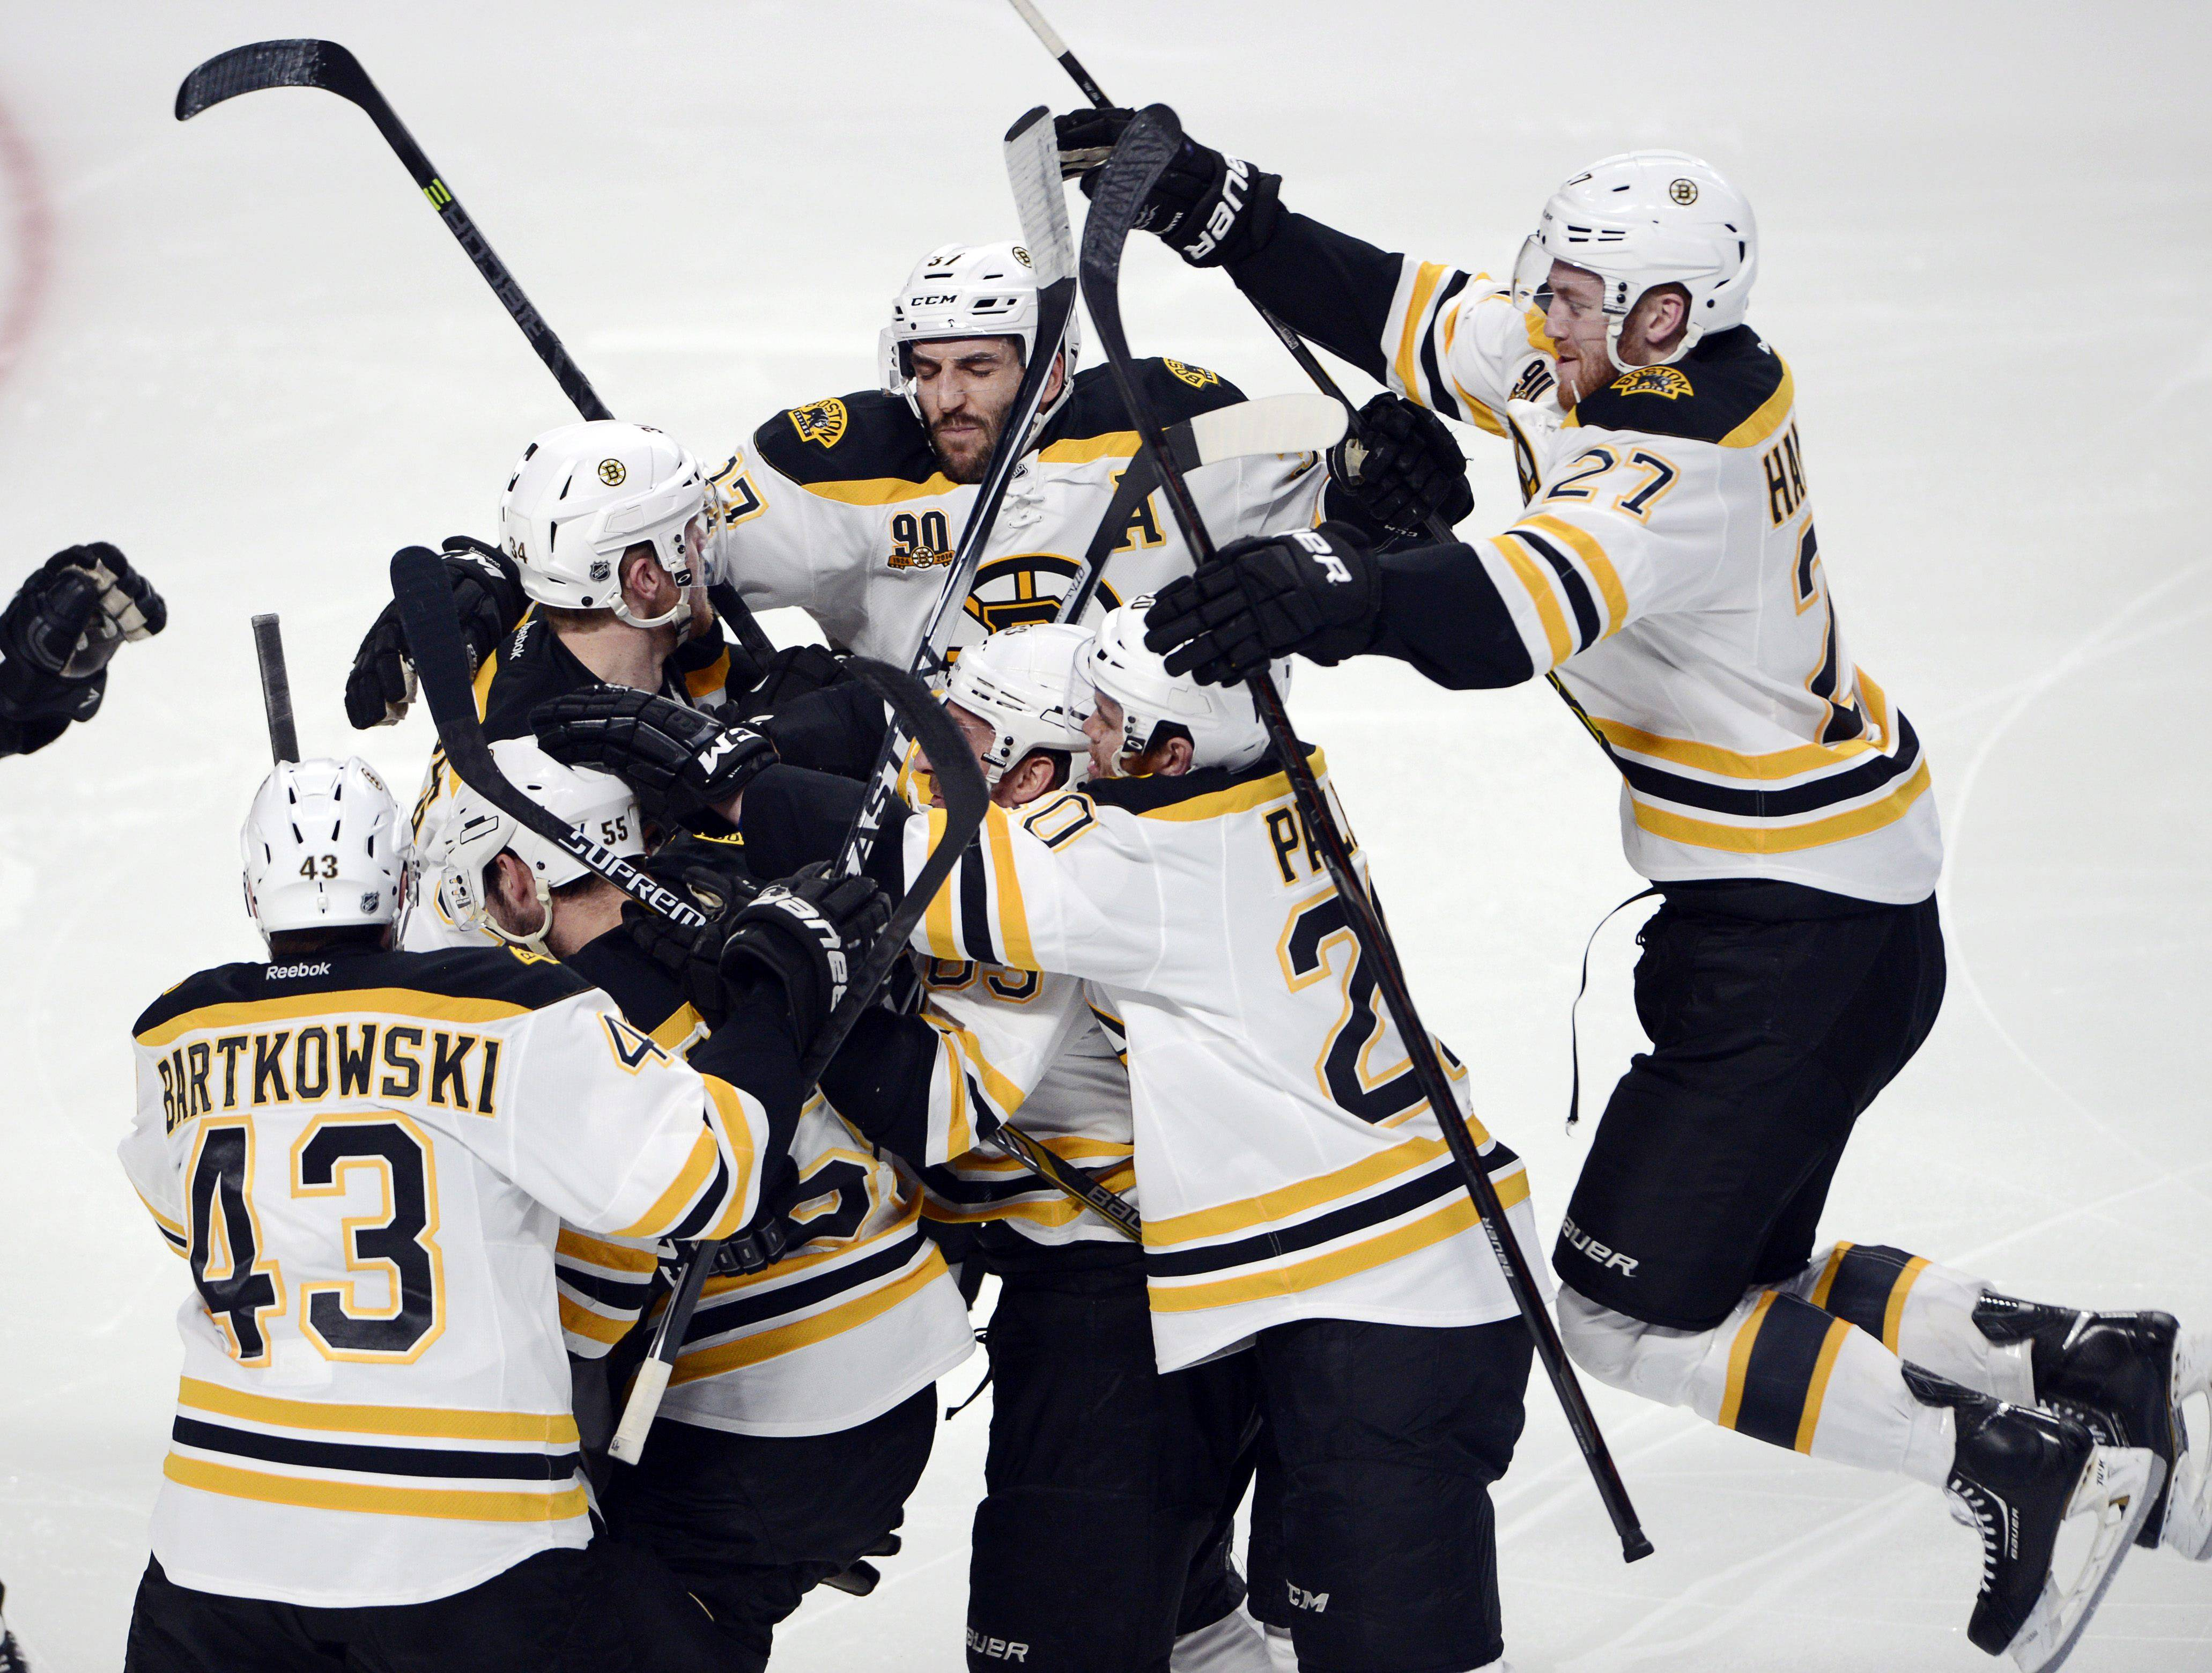 Boston Bruins' Matt Fraser is mobbed by teammates after scoring the game winning goal against the Montreal Canadiens during the first overtime period in Game 4 in the second round of the NHL Stanley Cup playoffs Thursday, May 8, 2014, in Montreal. (AP Photo/The Canadian Press, Ryan Remiorz)